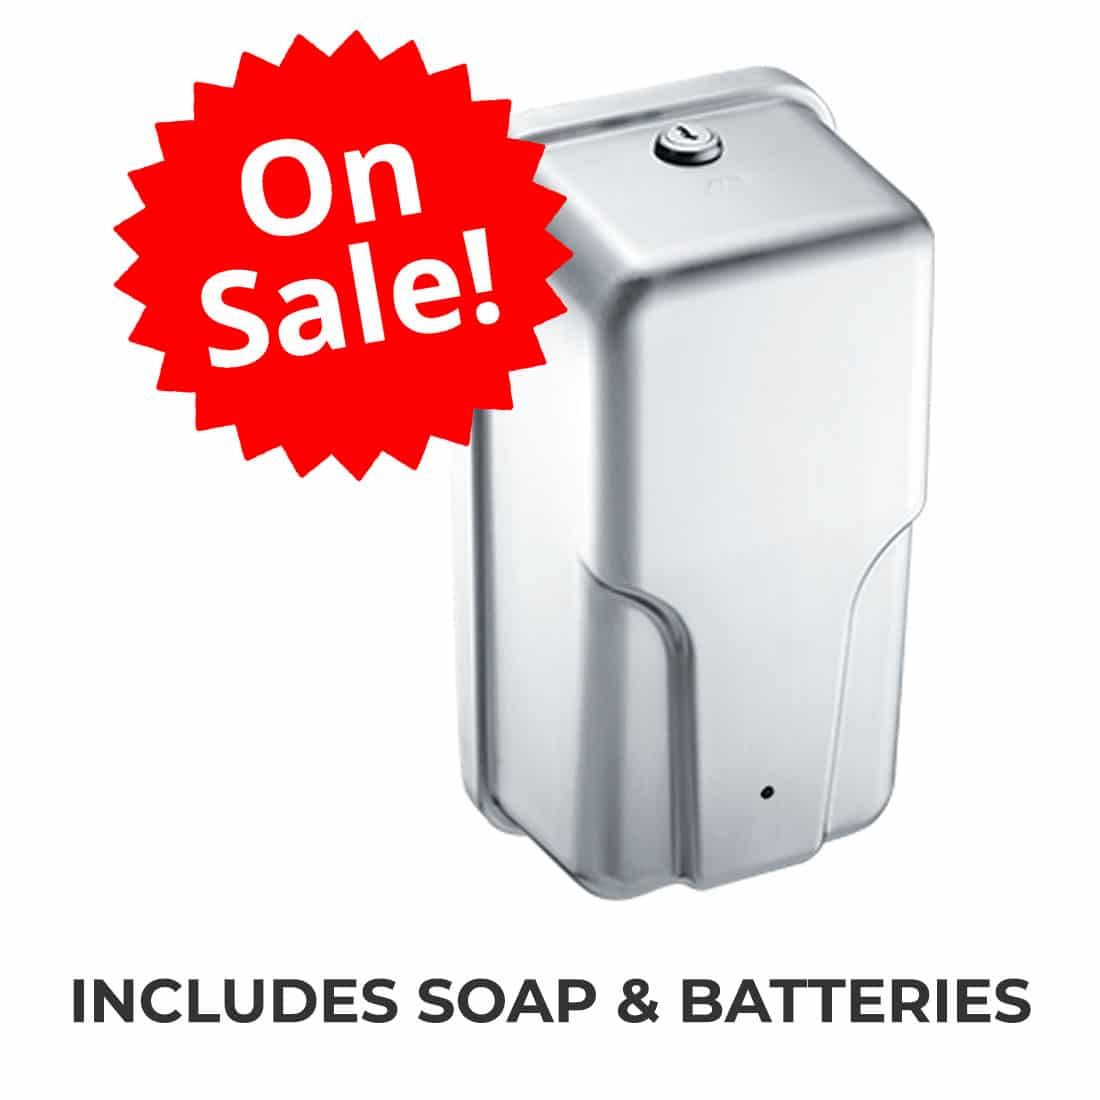 Sale on ASI 20365 Foam Soap Dispenser